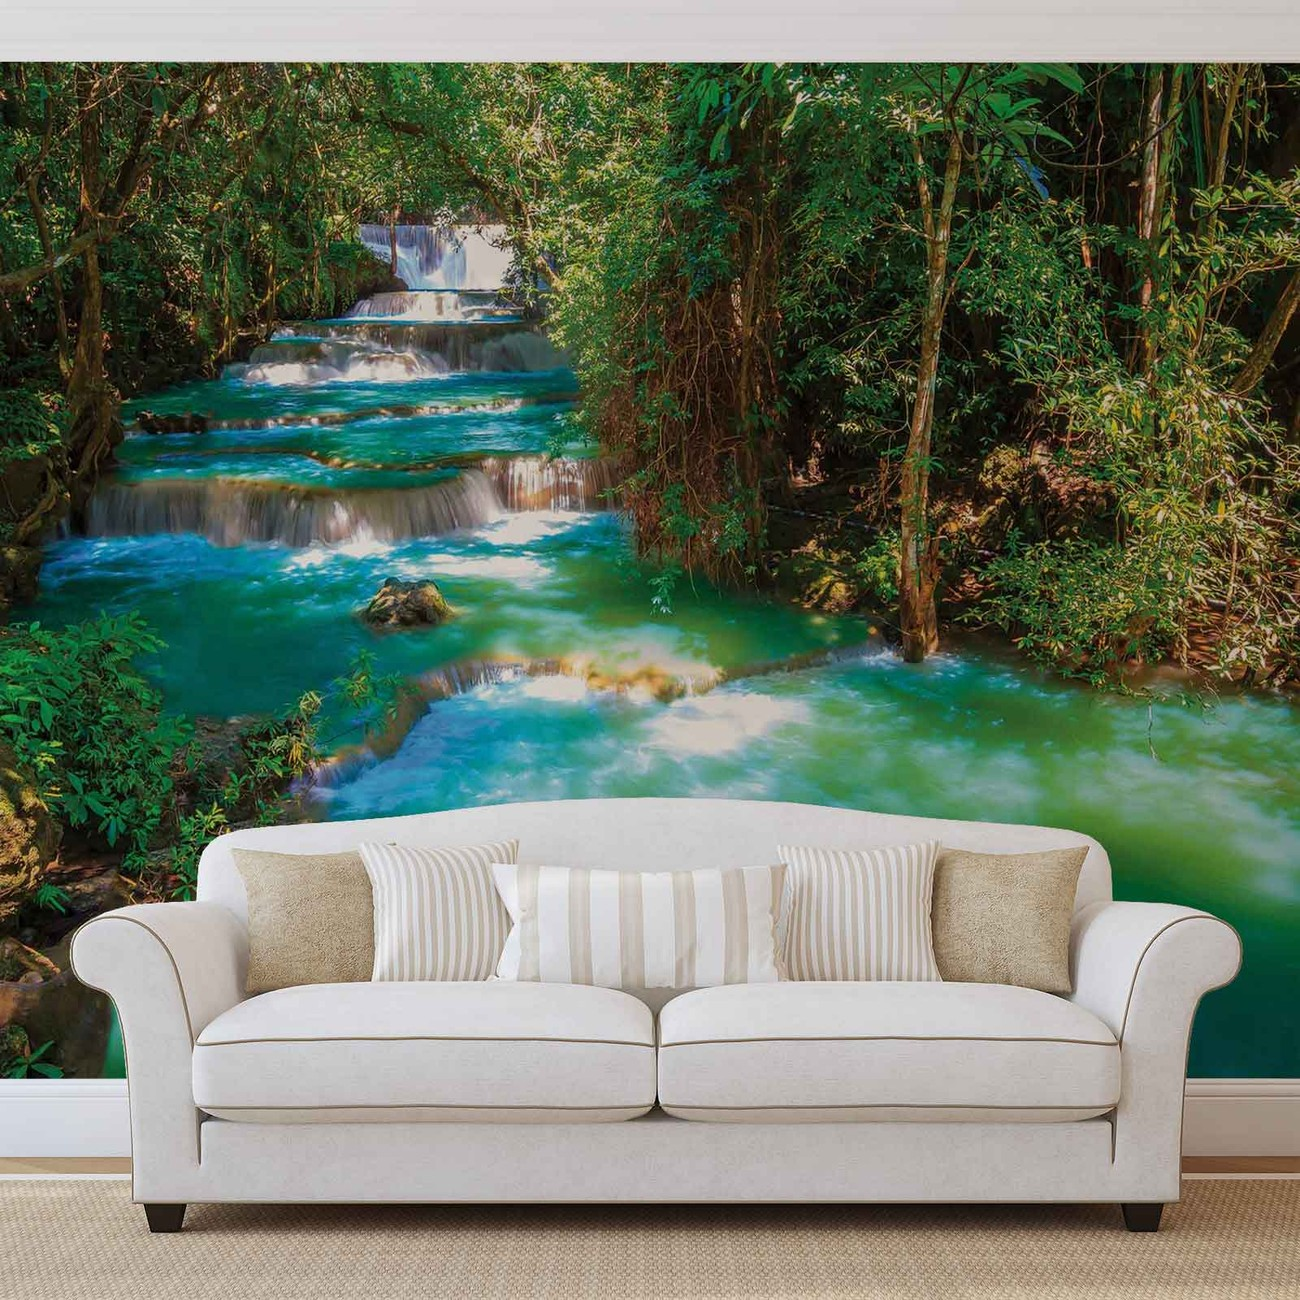 waterfalls trees forest nature wall paper mural buy at europosters. Black Bedroom Furniture Sets. Home Design Ideas